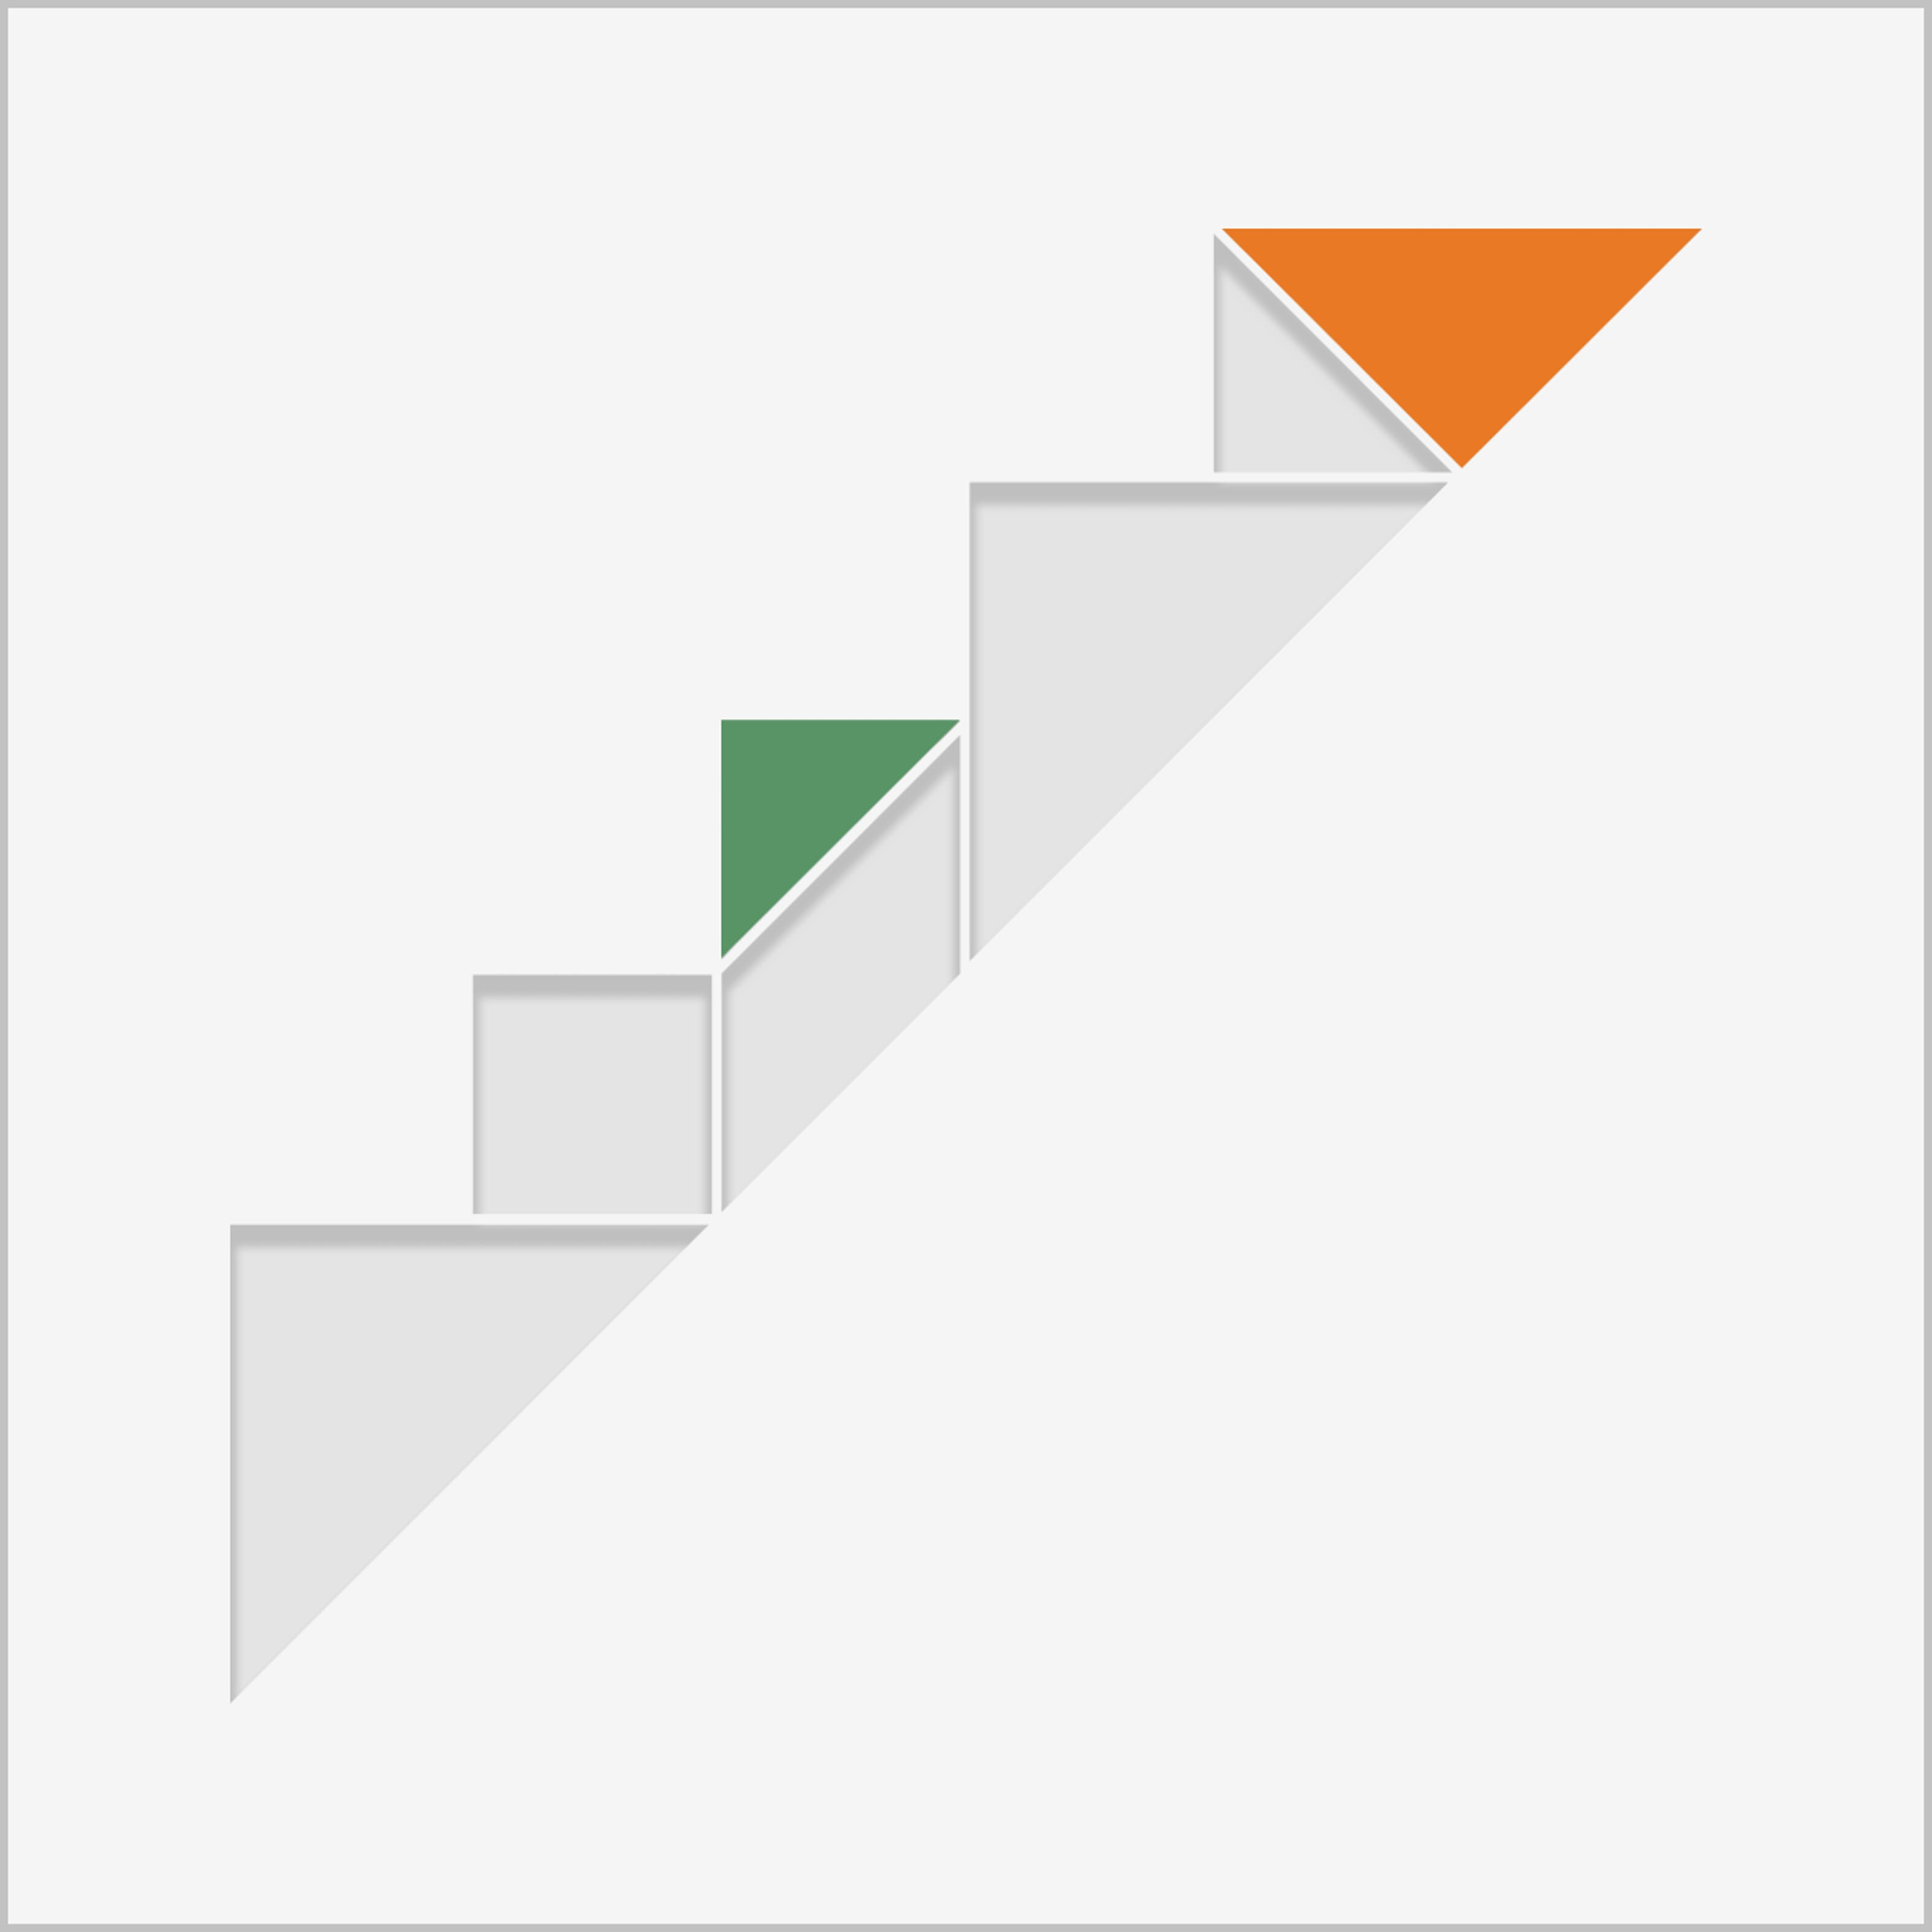 Operations Management: Analysis and Improvement Methods | Coursera